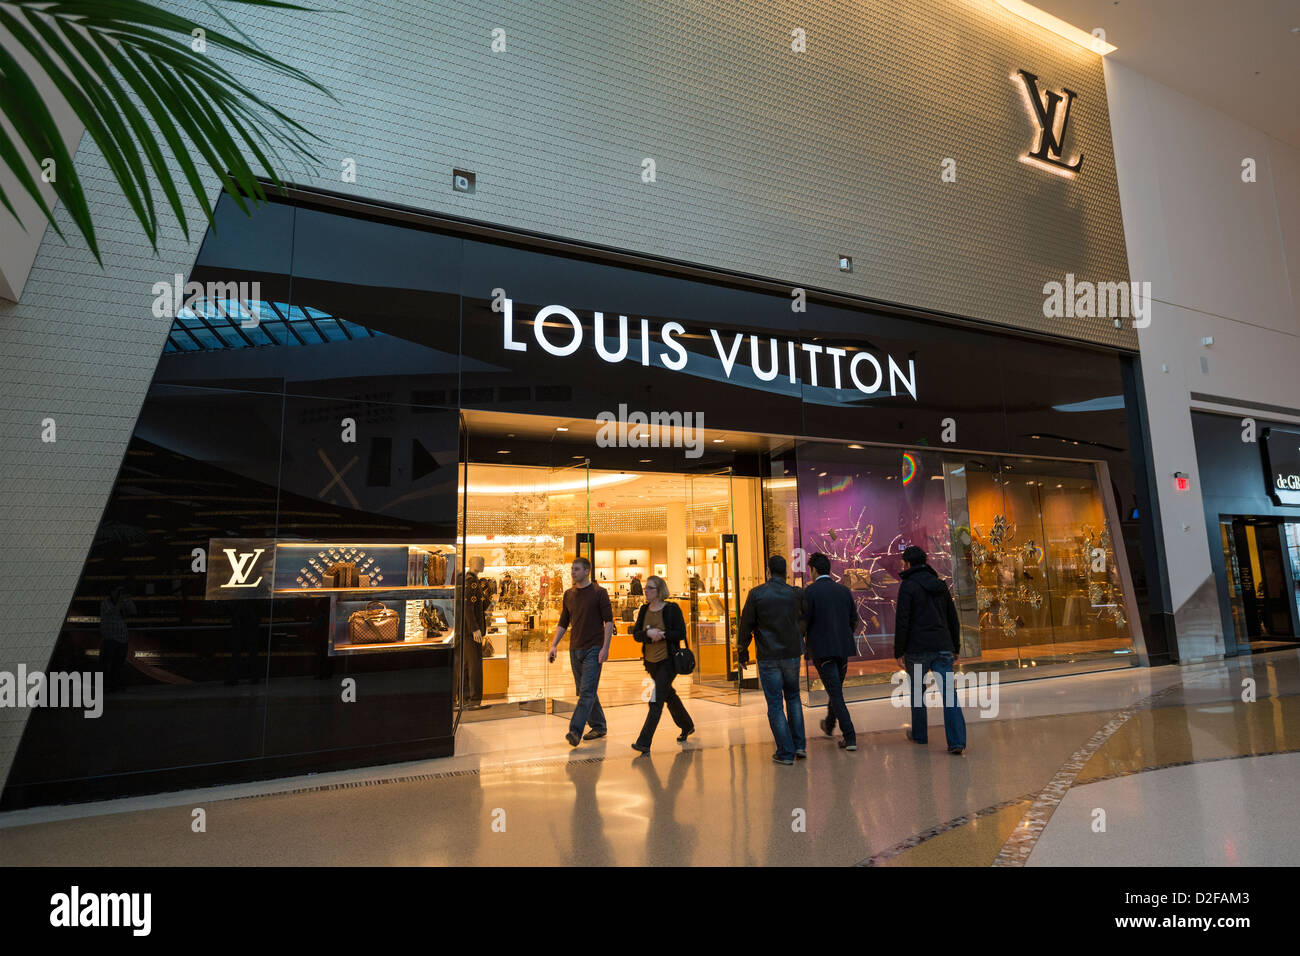 The Crystals shopping, dining, and entertainment complex at CityCenter in Las Vegas. - Stock Image